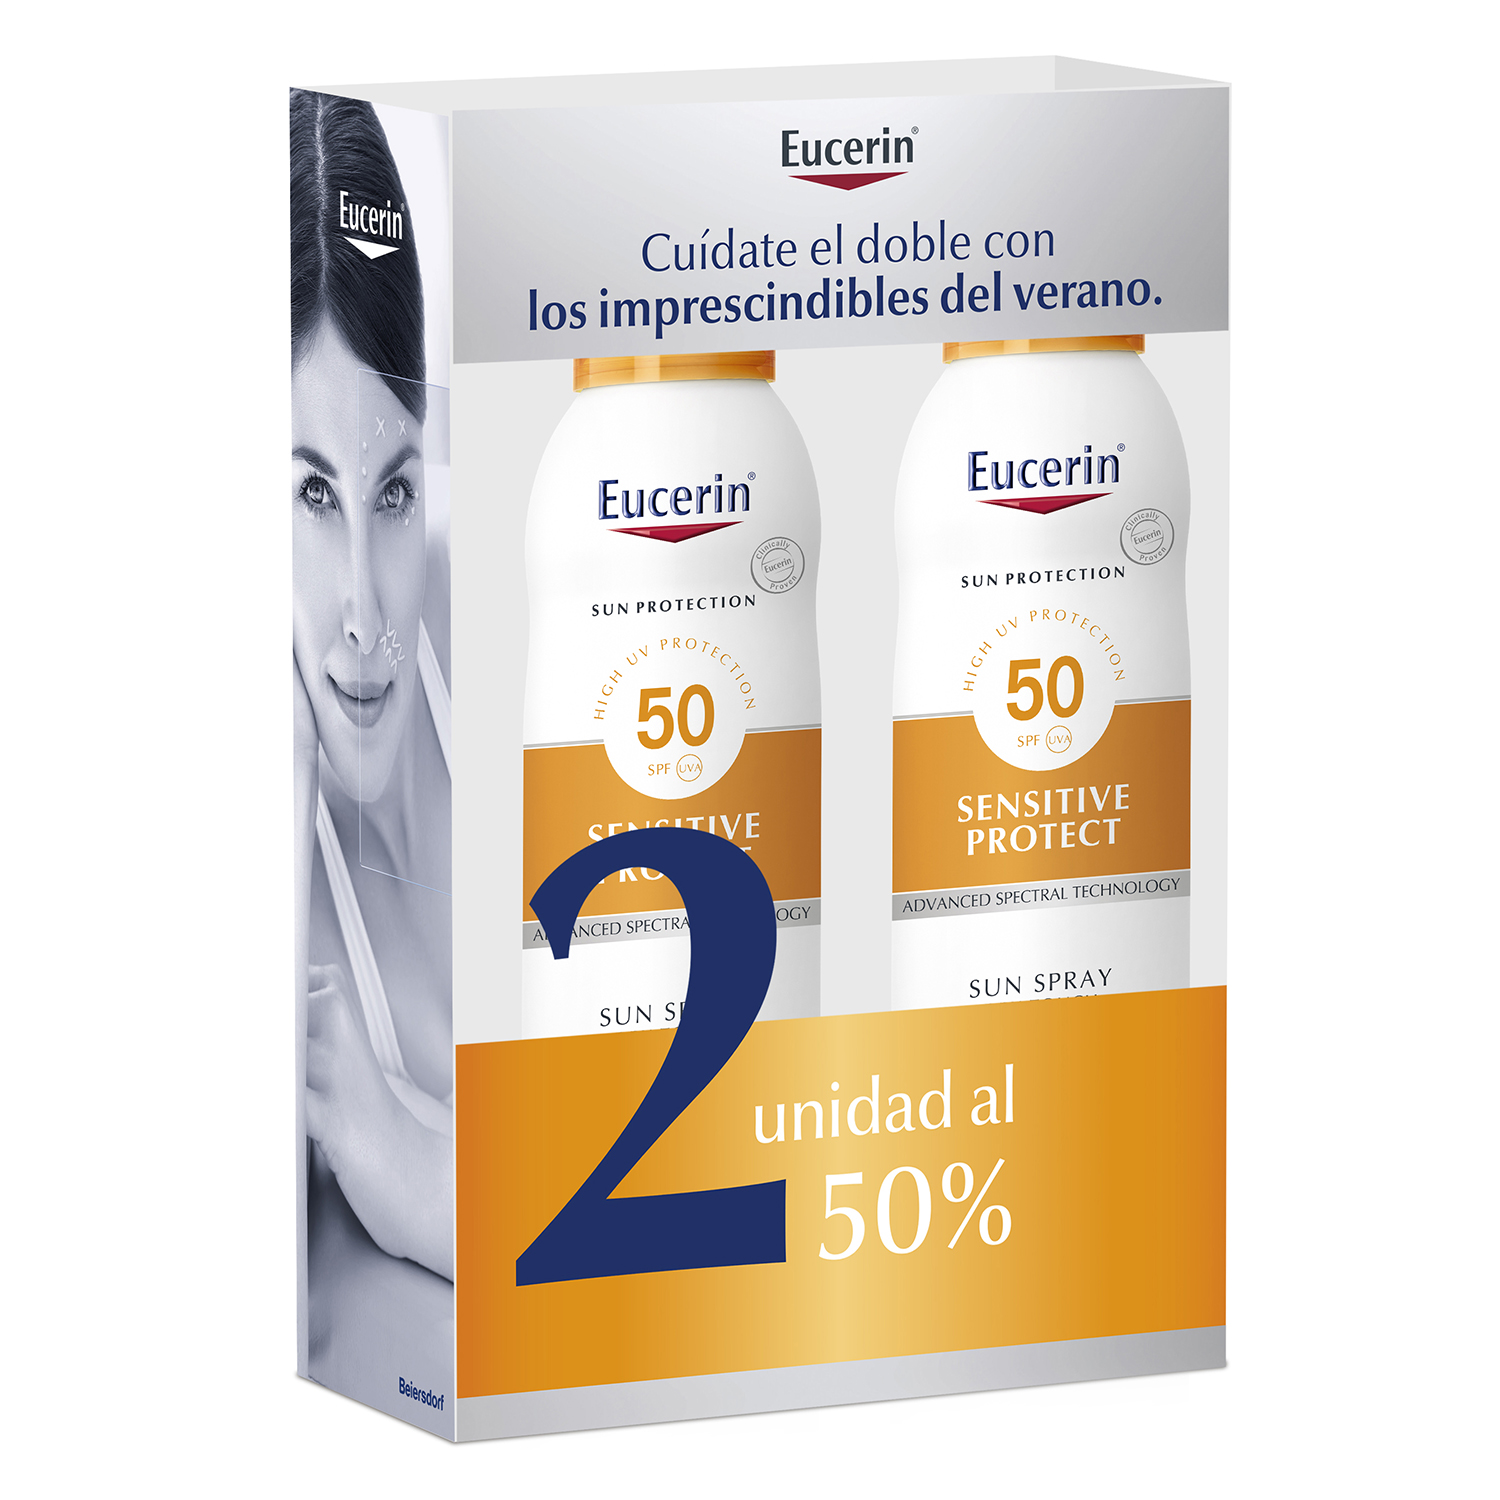 Duplo spray solar transparente Sensitive Protect FPS50 Eucerin 400 ml.